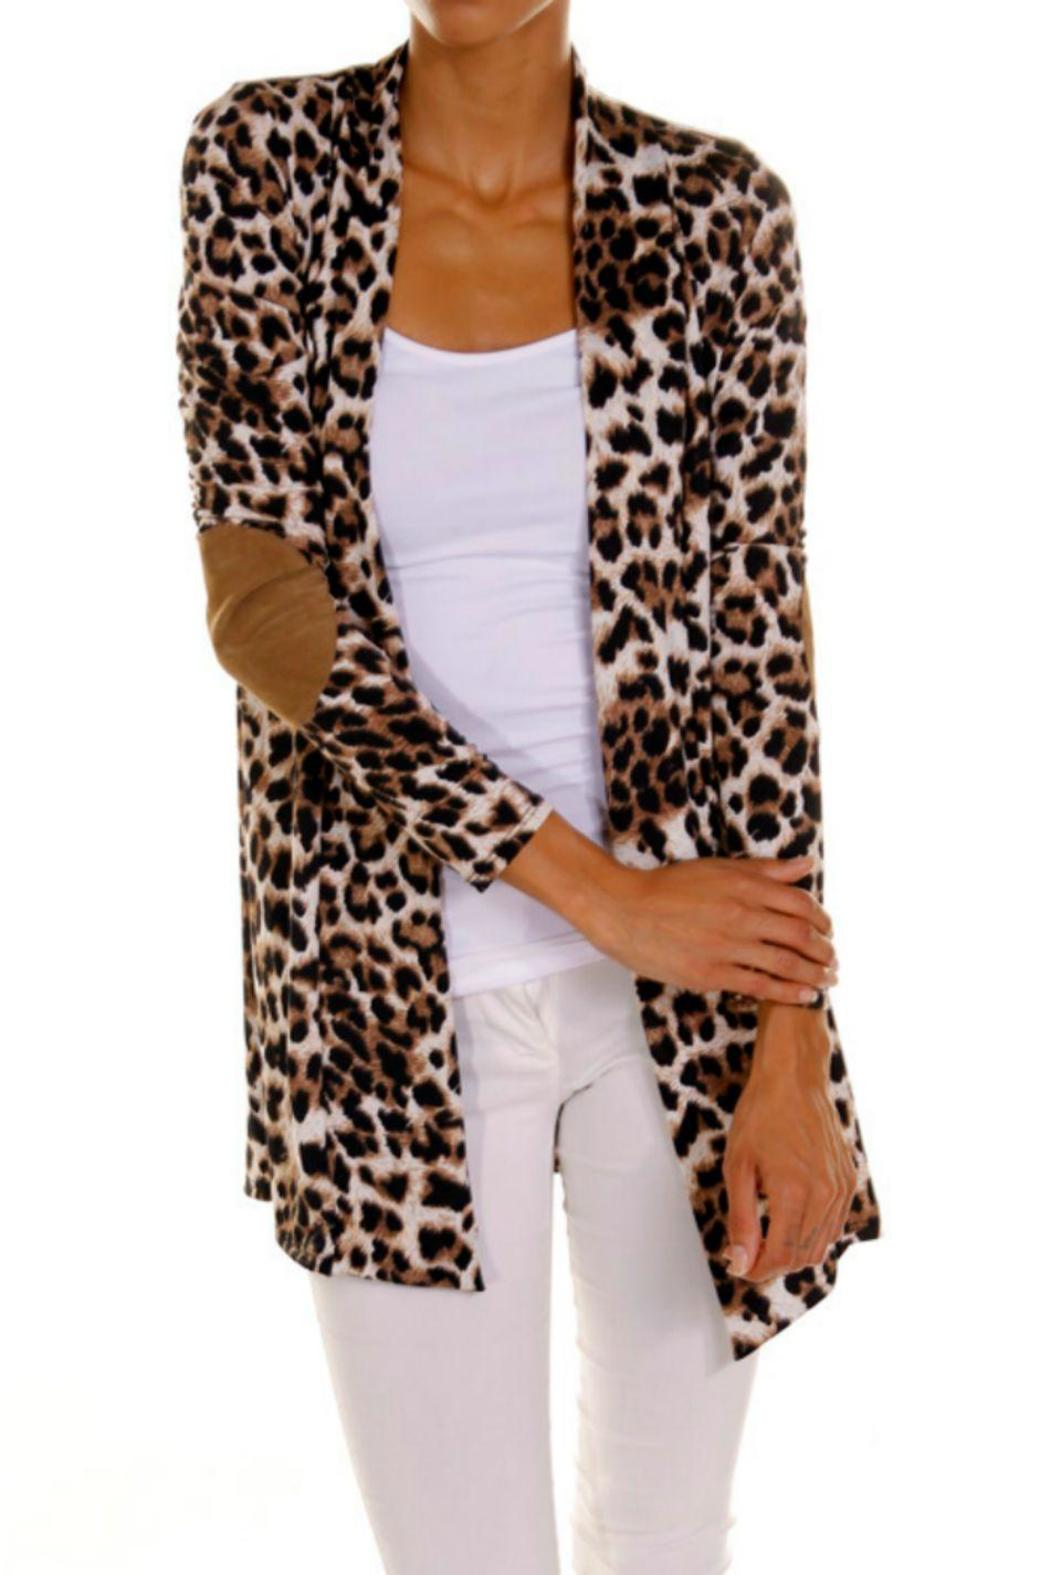 Bedazzled Leopard Cardigan from Oklahoma by Country Lace Boutique ...